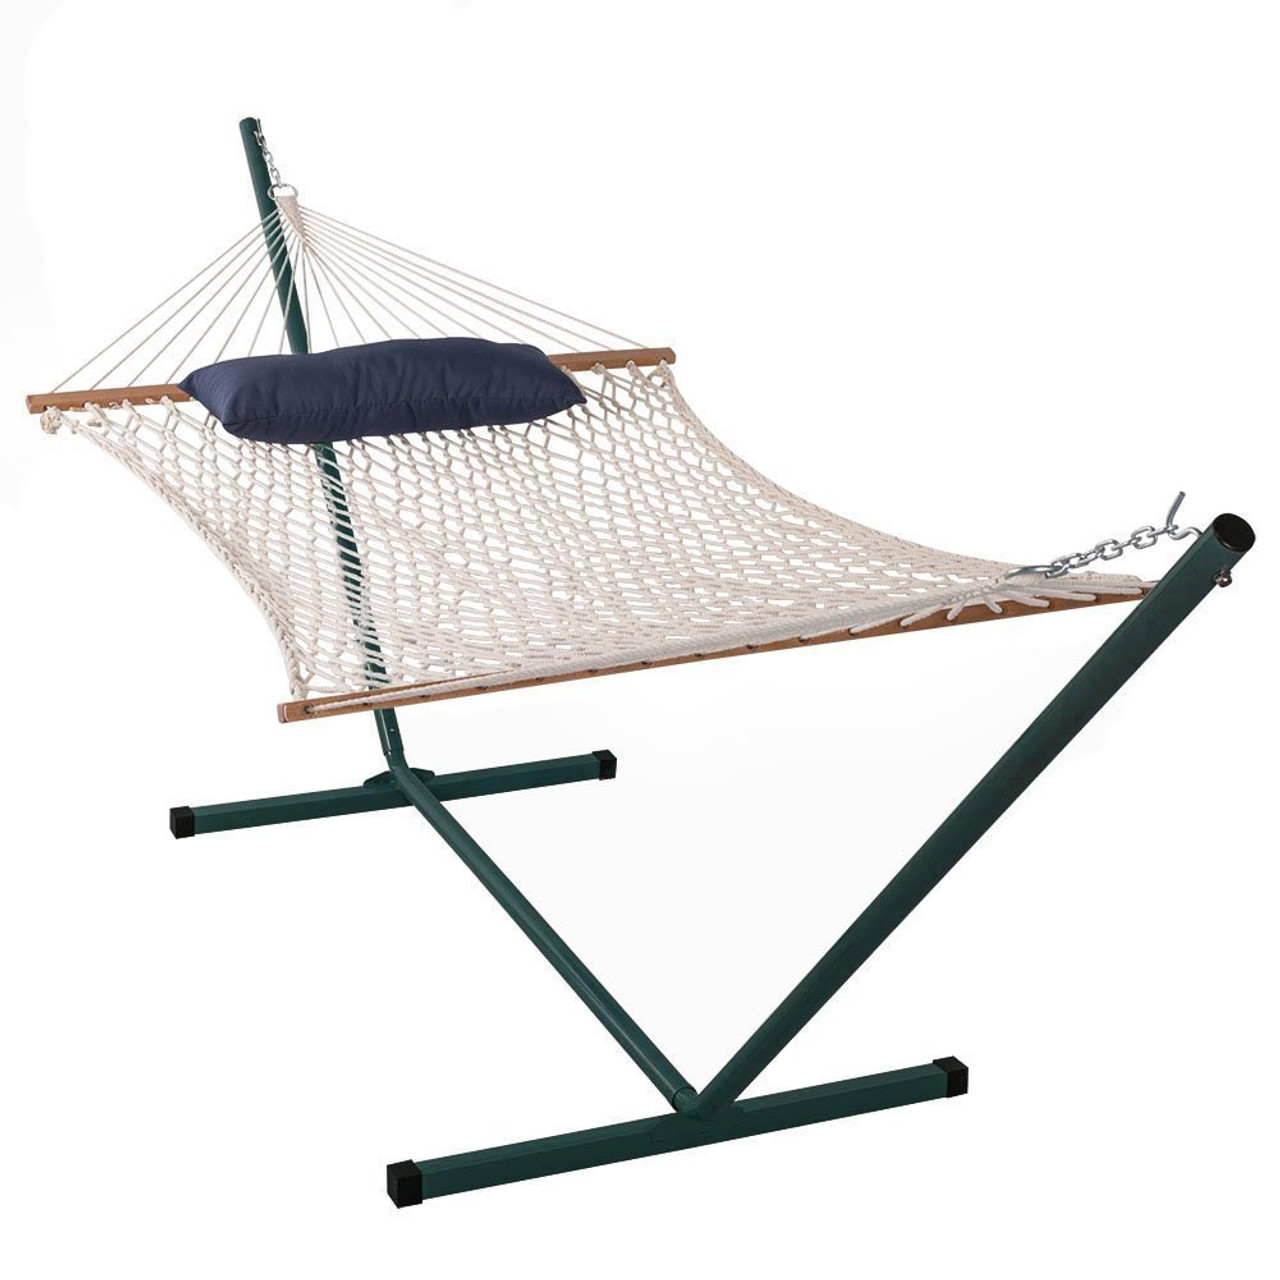 lazy daze hammocks cotton rope hammock with 15 feet steel stand and pillow  bo cotton rope hammock with 15 feet steel stand and pillow  bo  rh   sundaleoutdoor